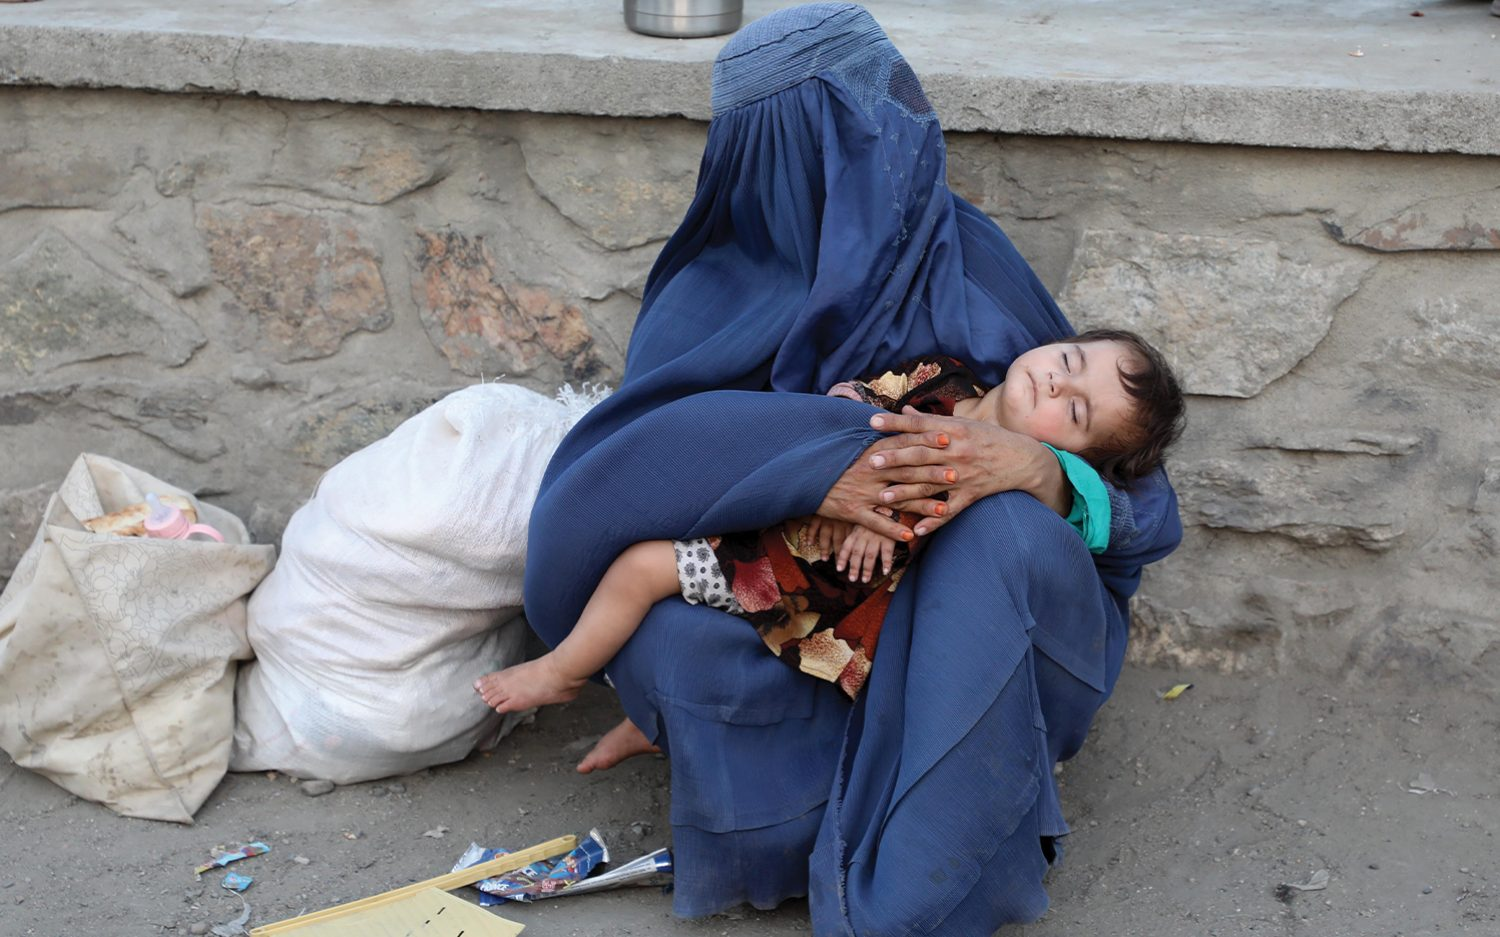 Hopes and regrets for Afghanistan